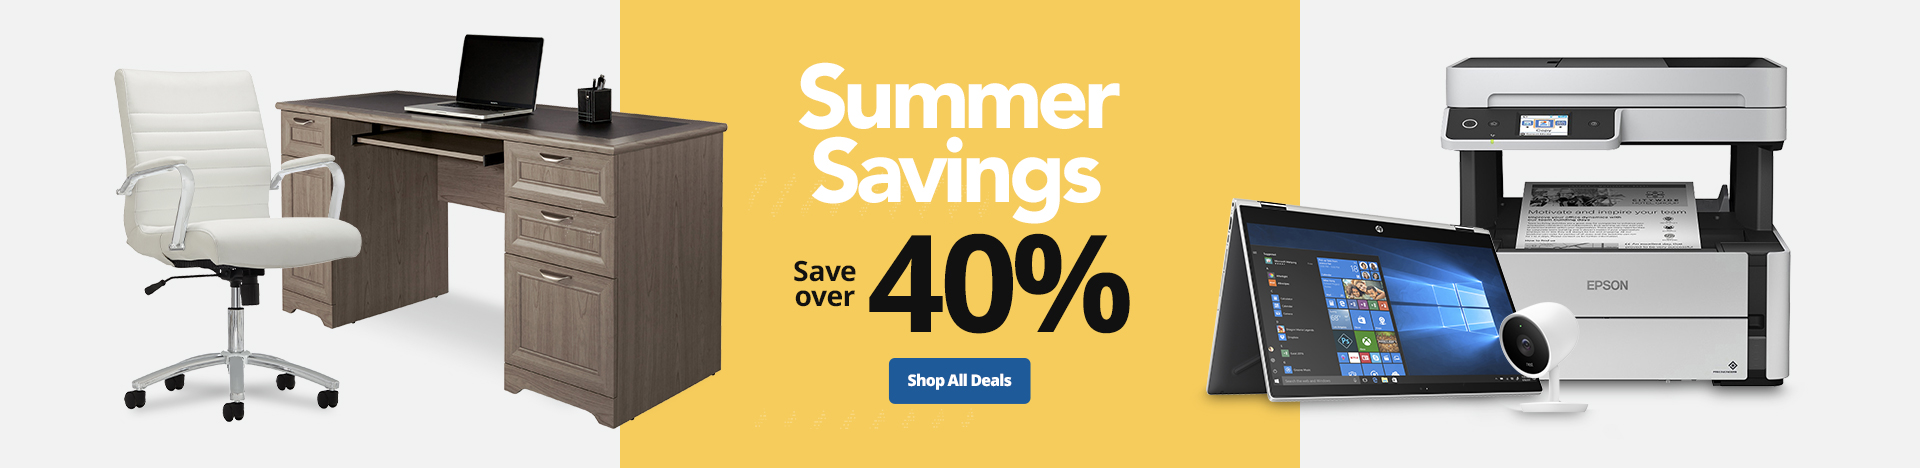 Summer Savings - Save over 40%